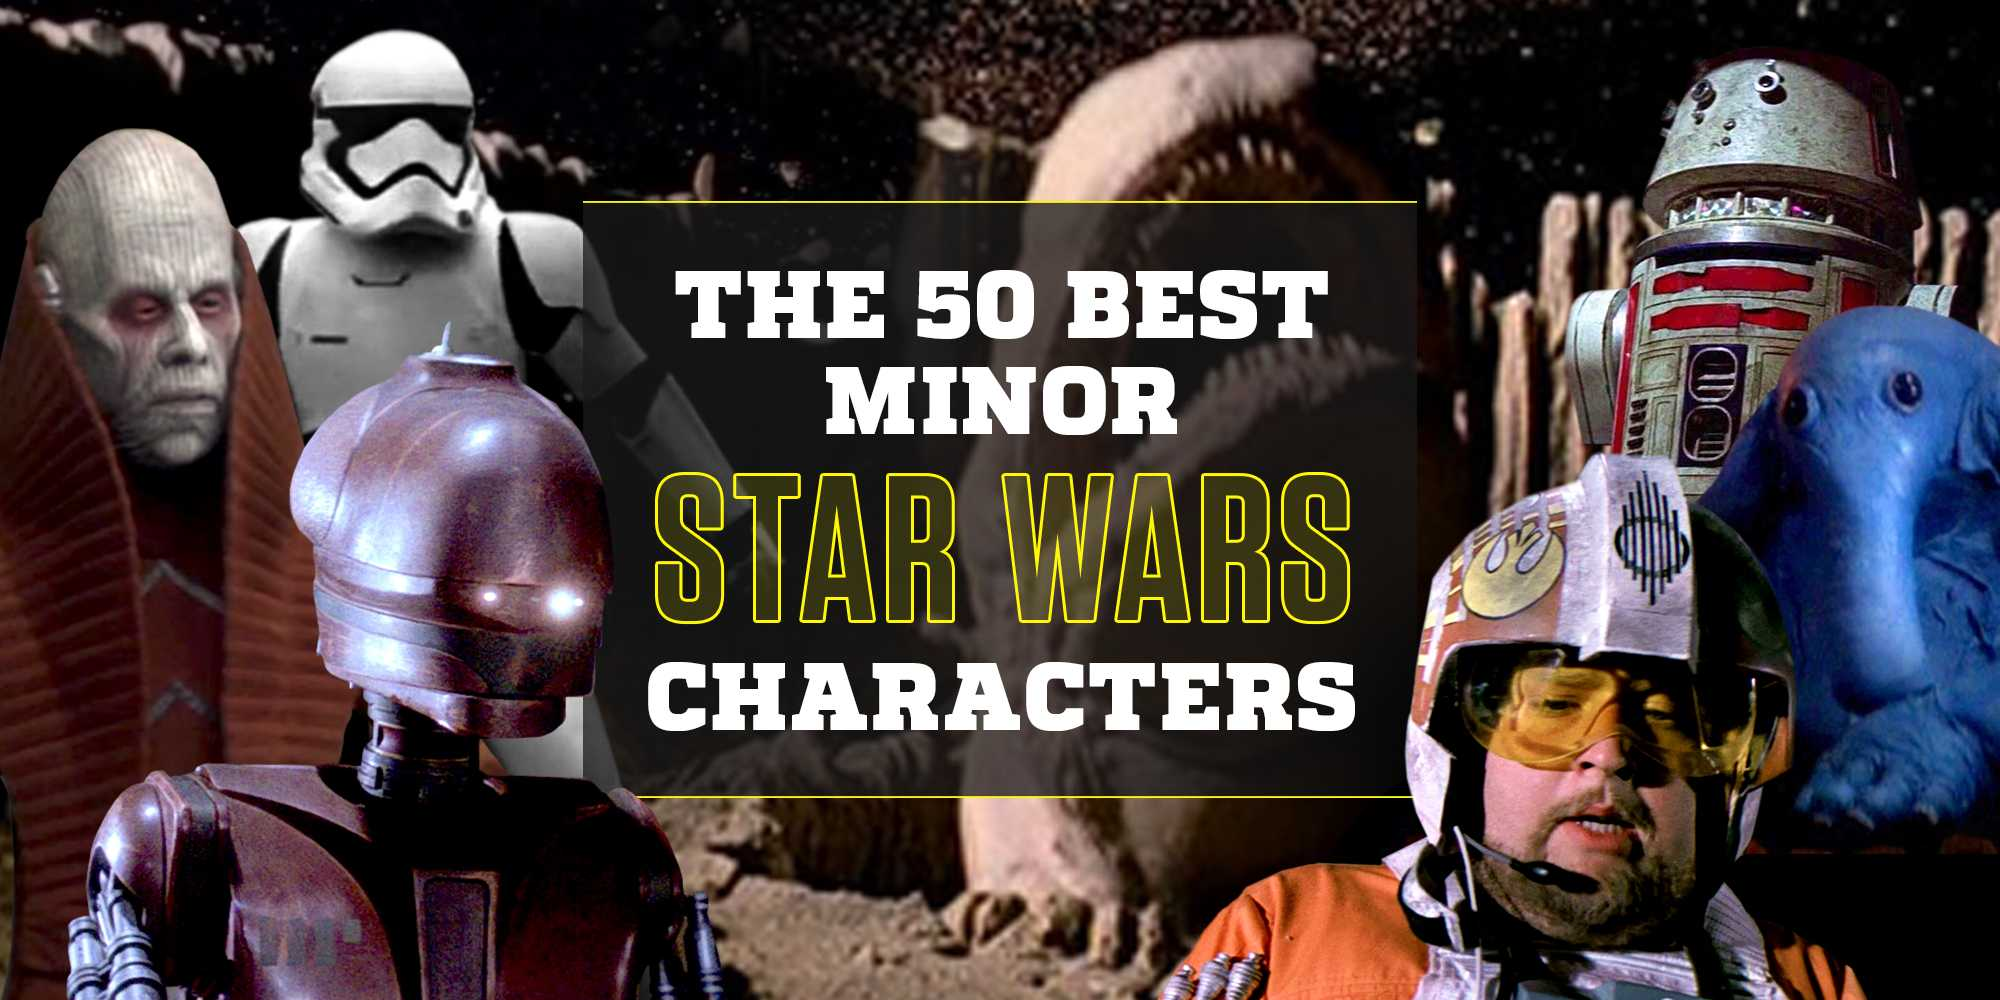 The 50 best minor characters in 'Star Wars' thumbnail